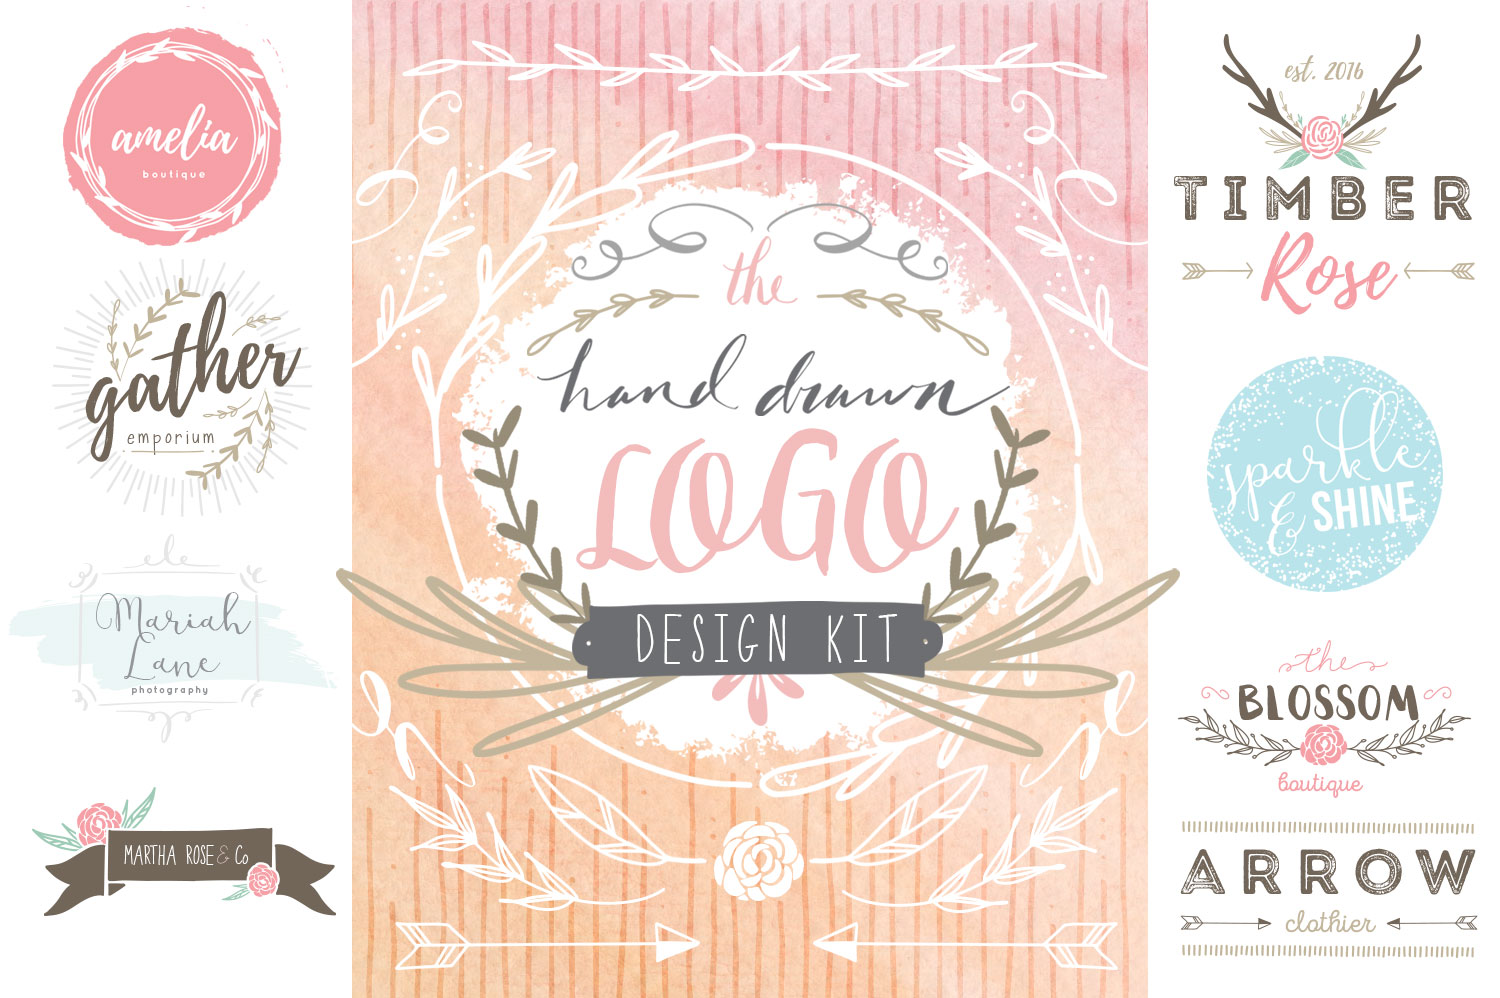 Hand Drawn Logo Design Kit example image 1